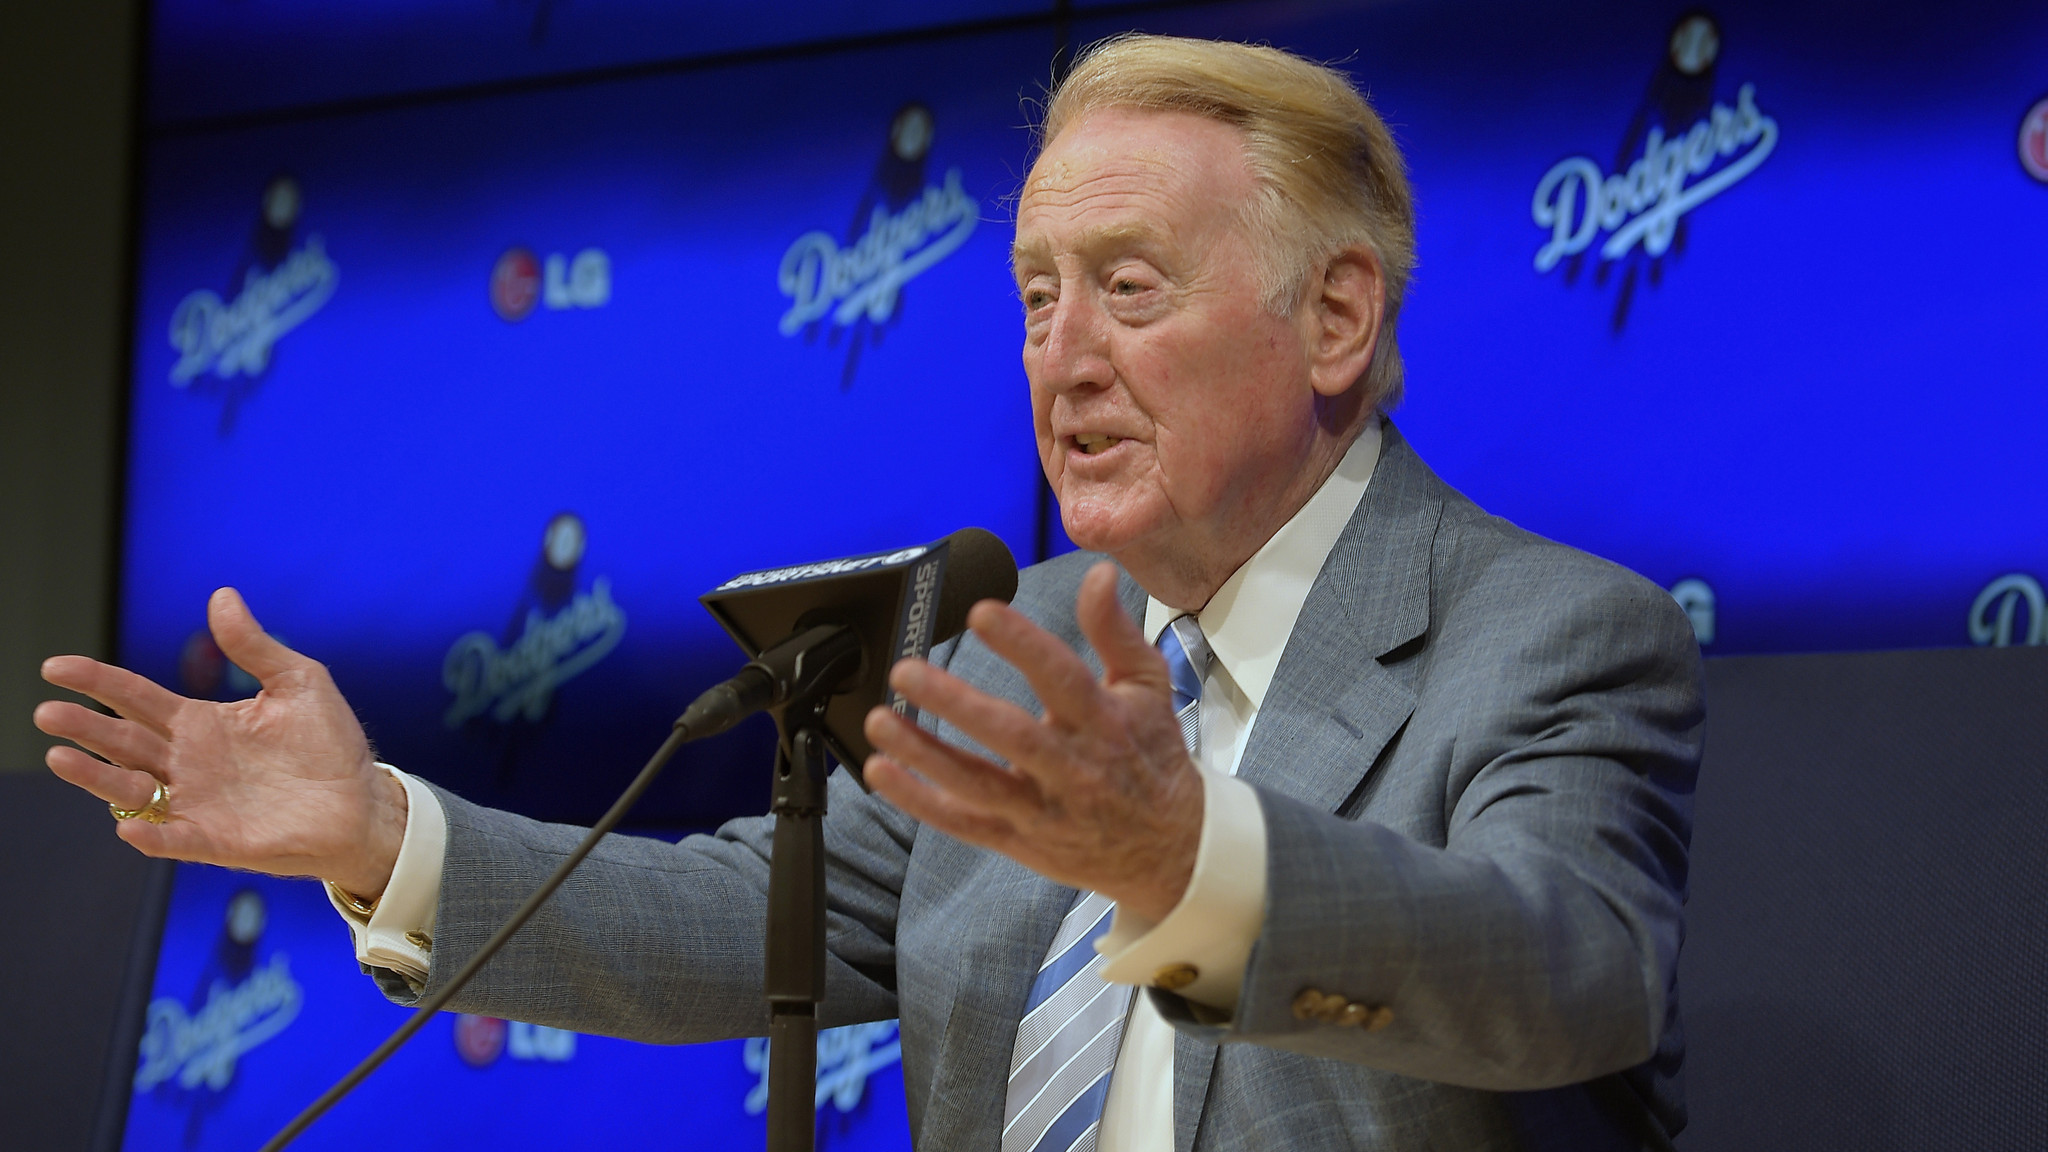 Vin Scully will never understand how deeply he's touched us